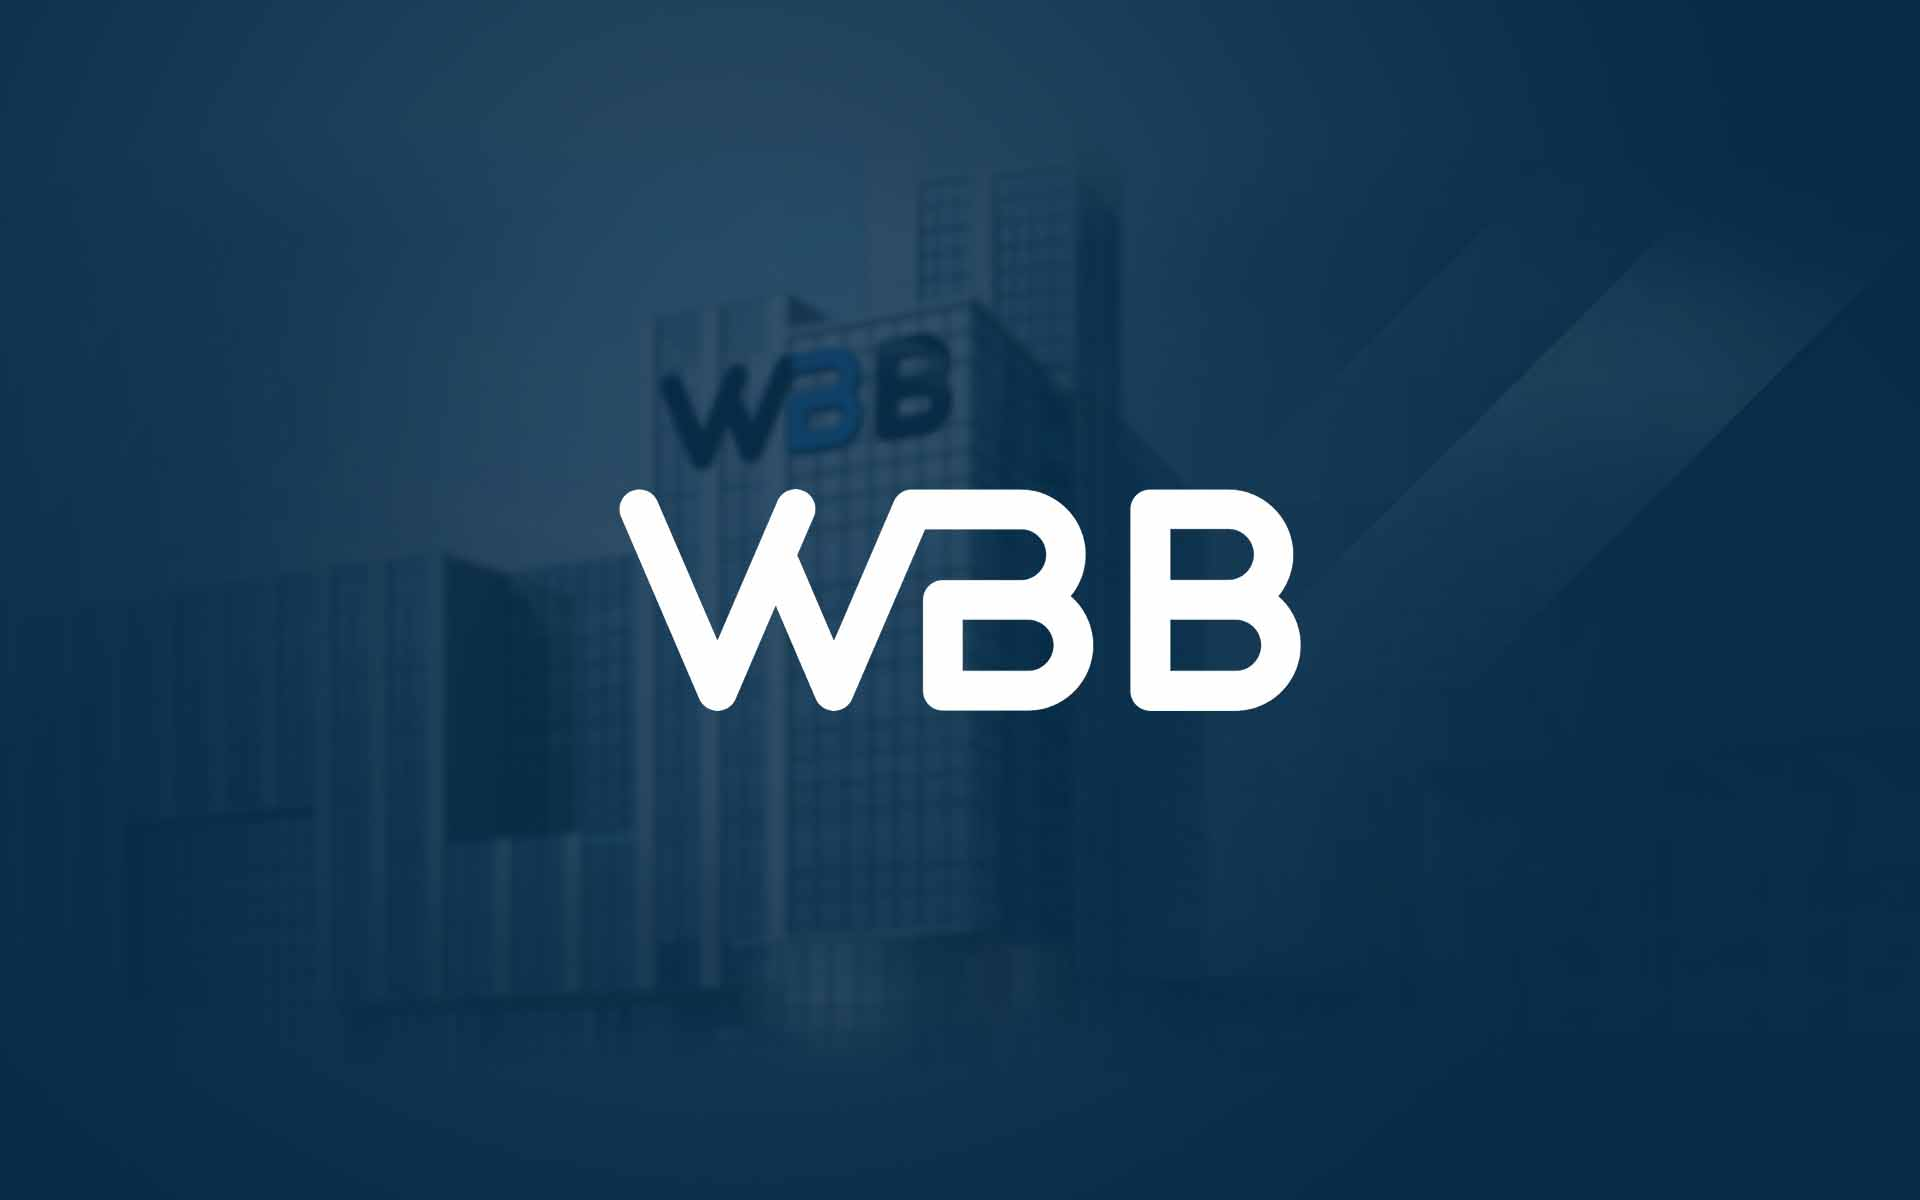 Several days are left before the first PRE- ICO is to be held. Now we can watch and analyze the particular steps WBB-group team has already undertaken.